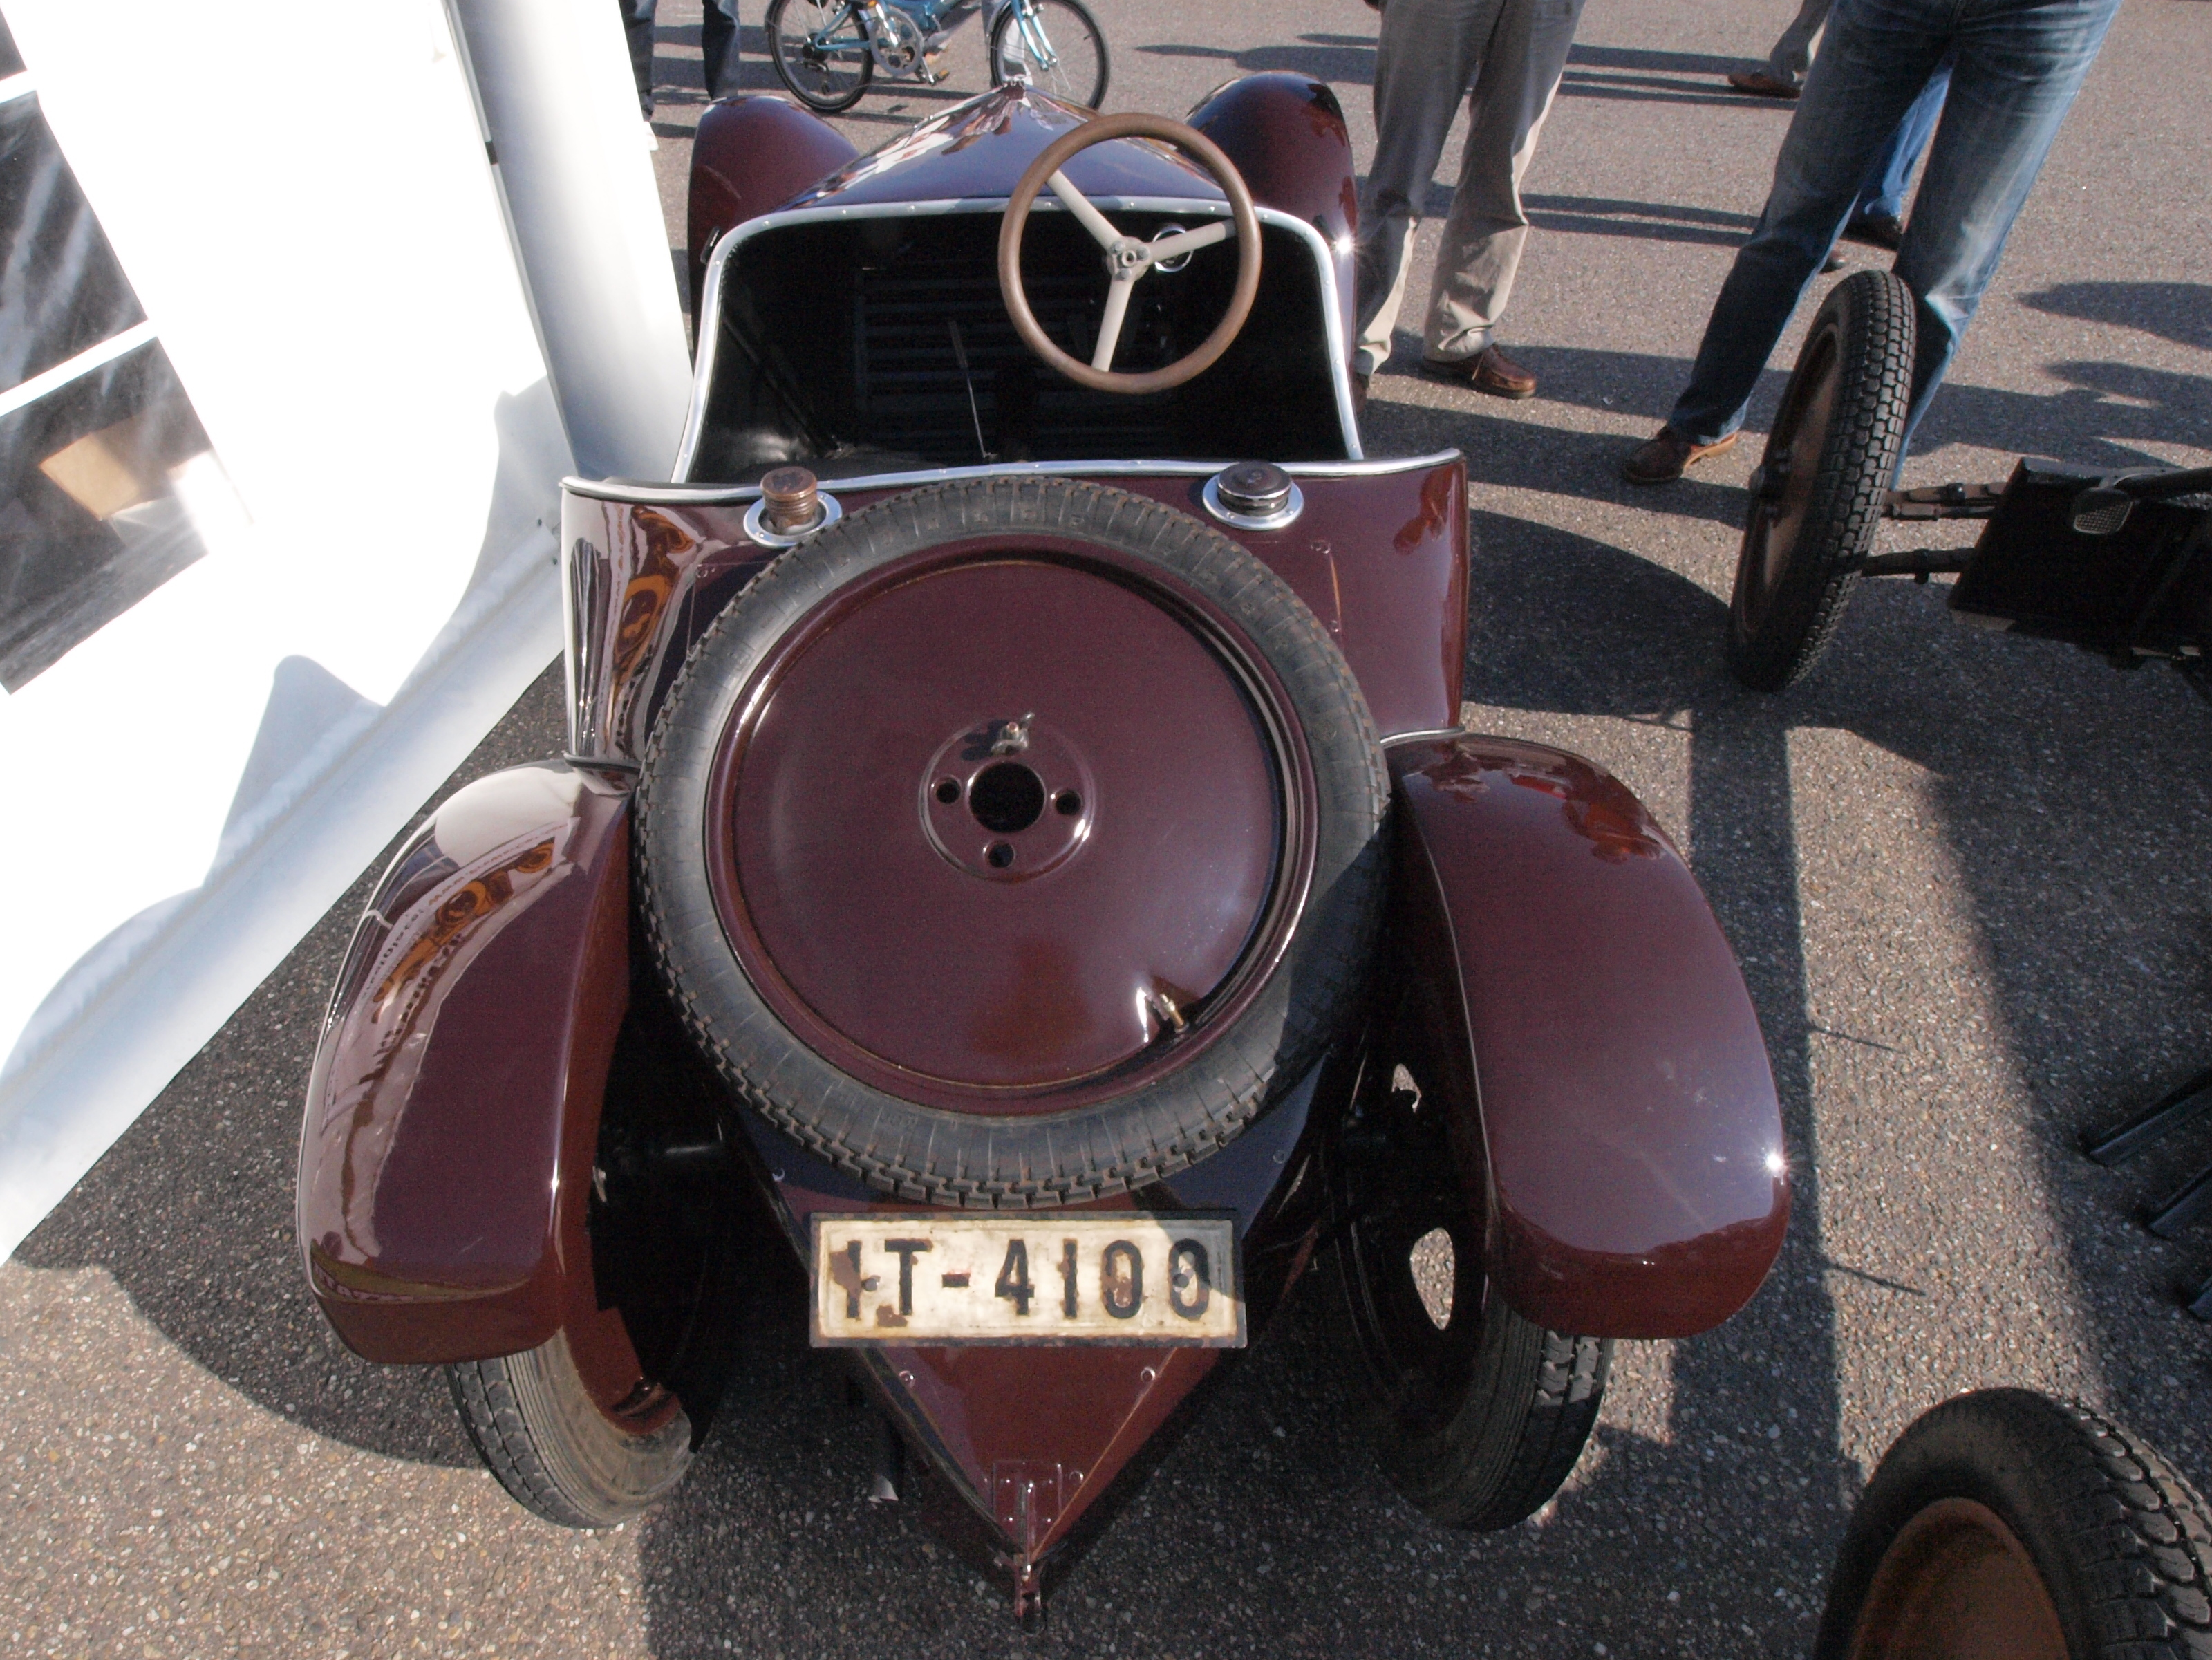 File:Very very old car of unknown brand licence IT-4100 pic1.JPG ...